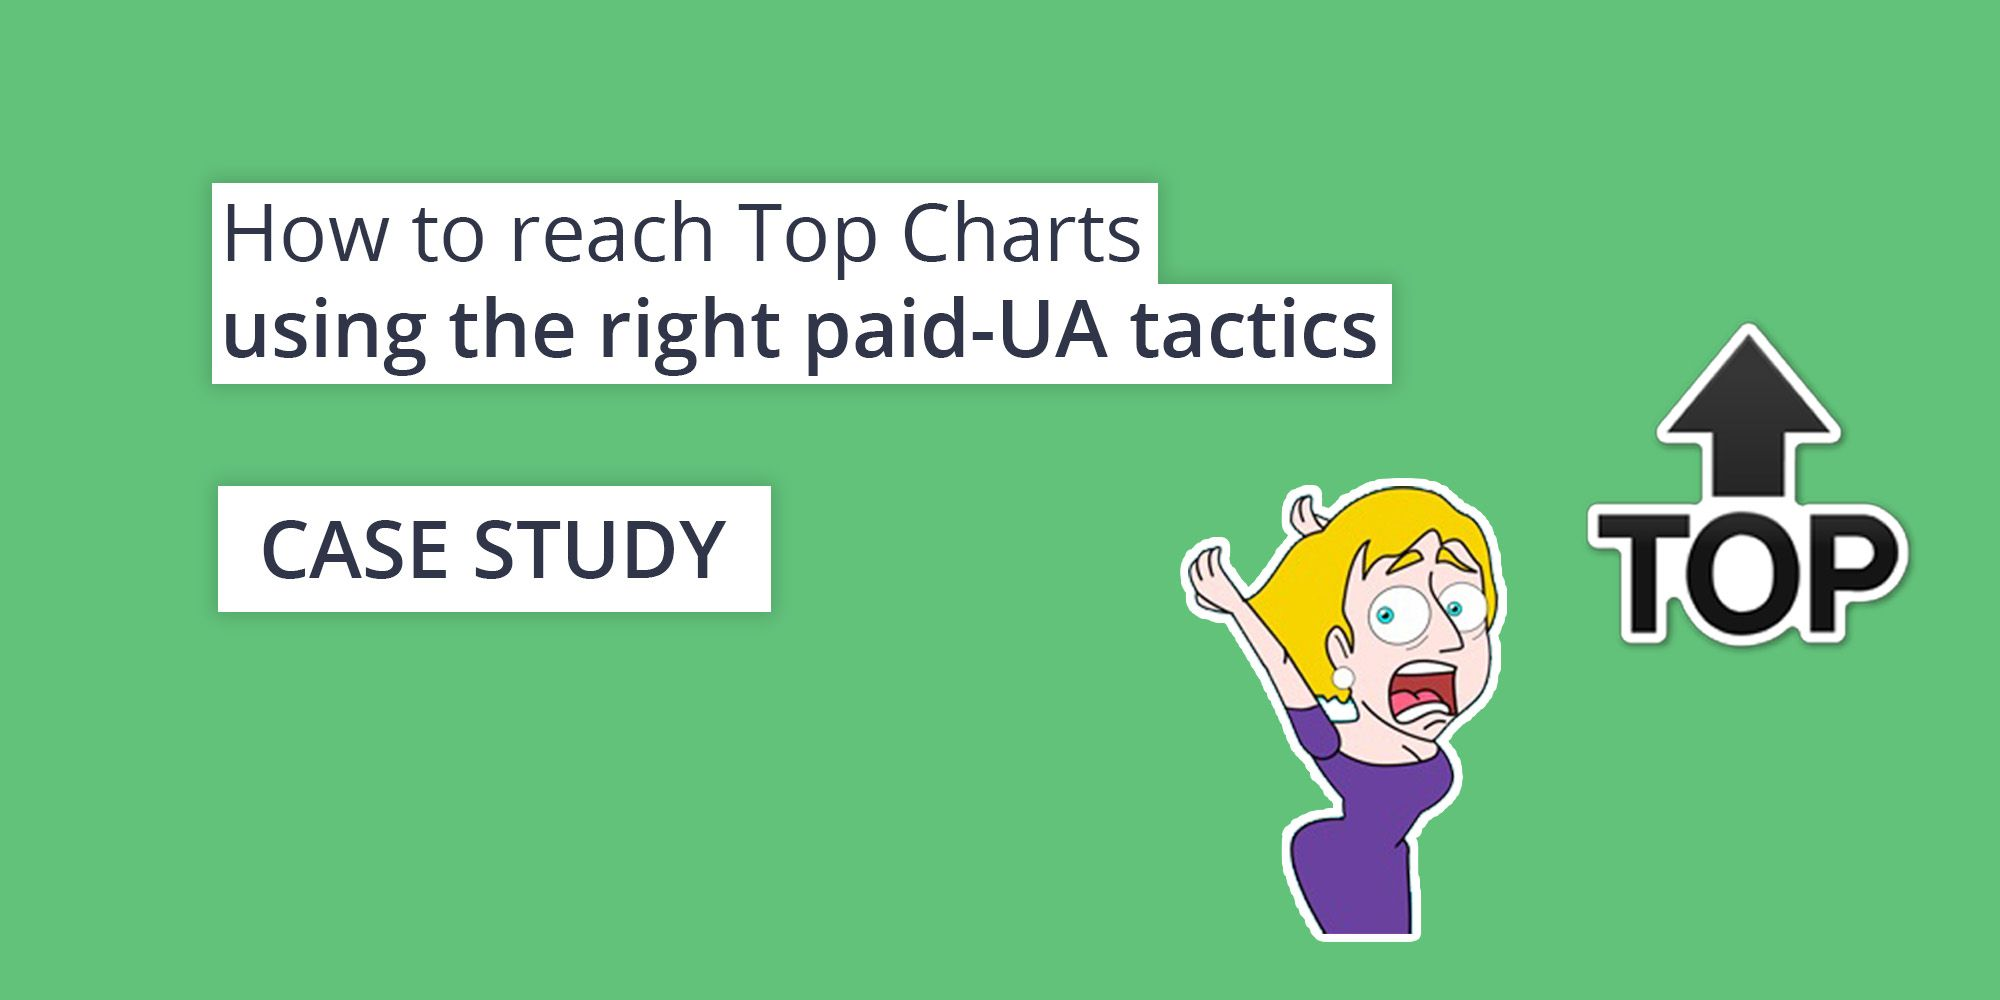 How to reach Top Chart using the right paid-UA tactics